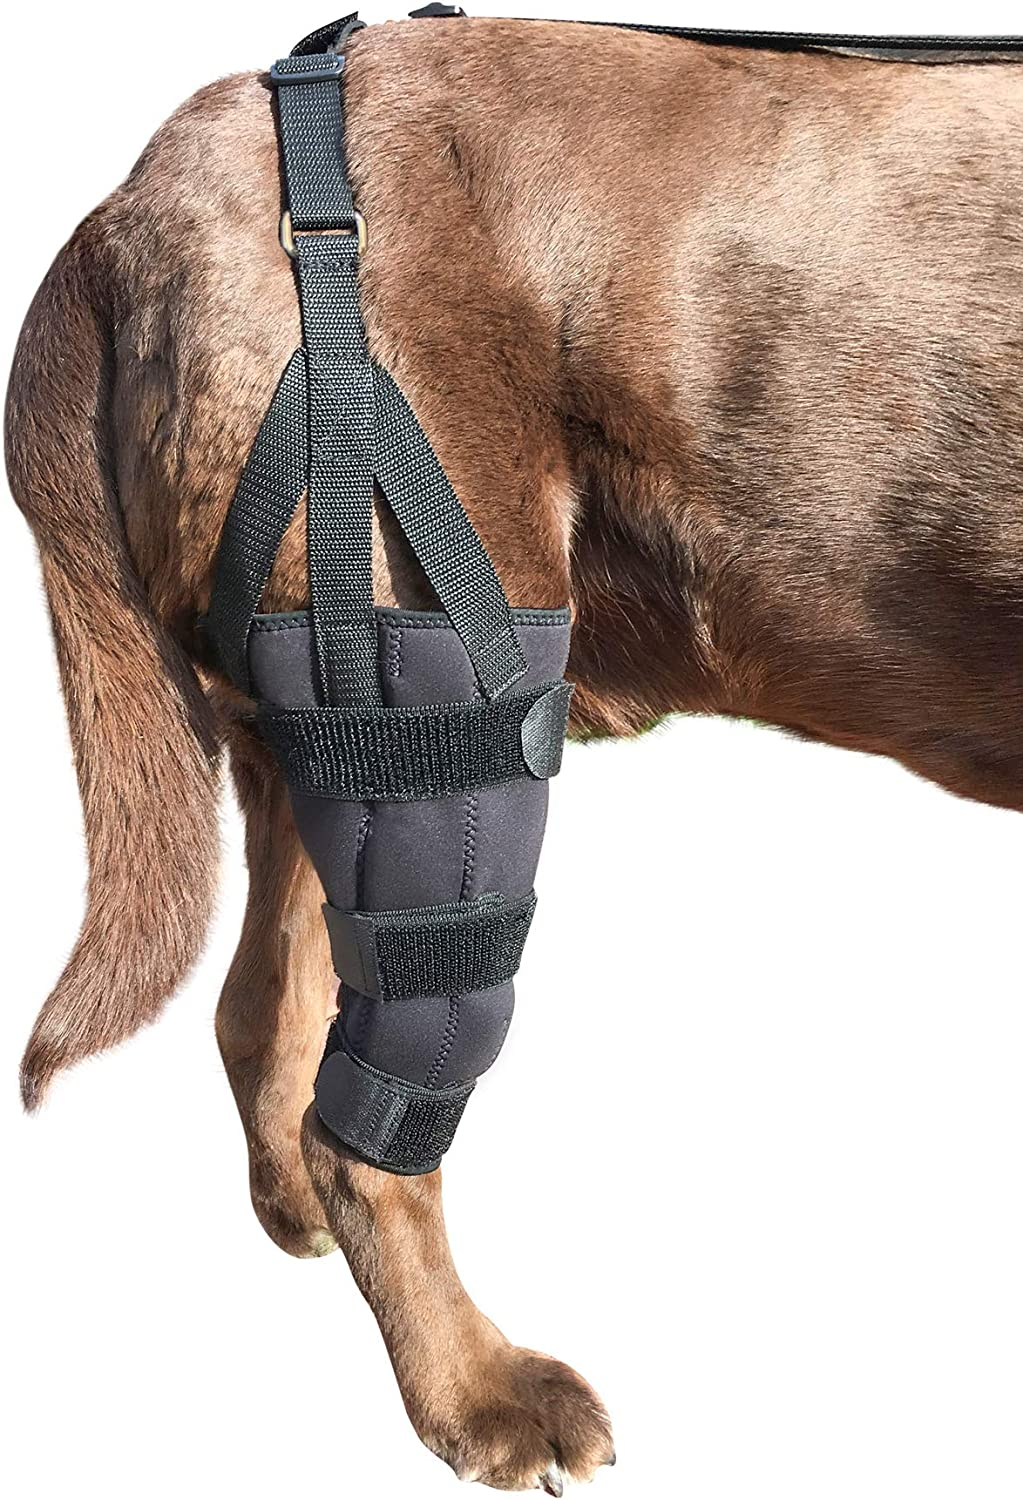 ccl knee brace for dogs